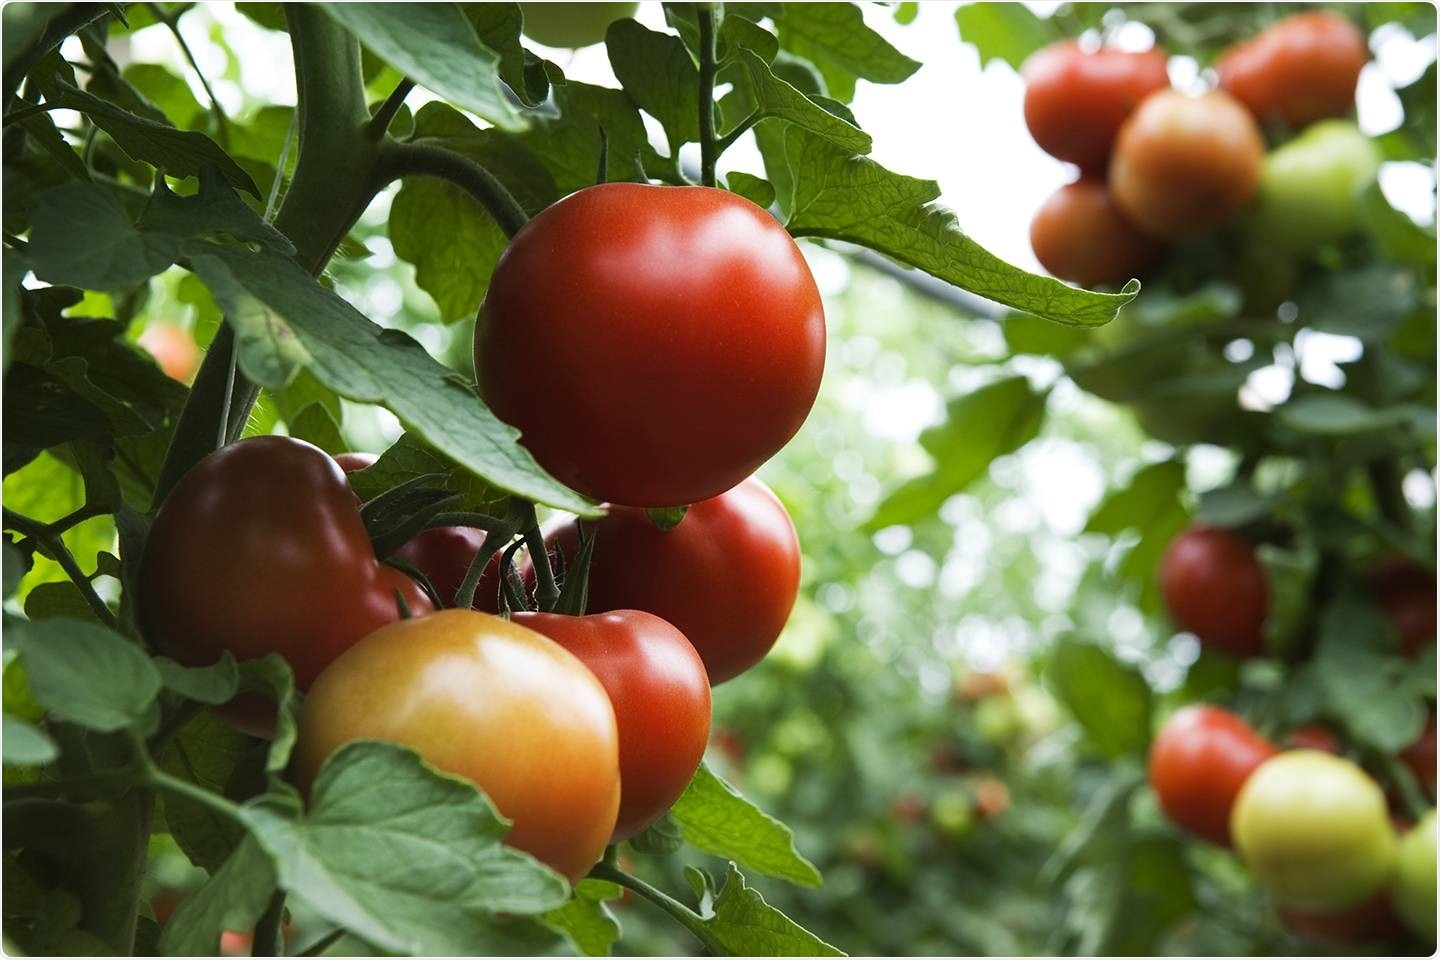 Researchers discover DNA differences in 100 varieties of tomatoes